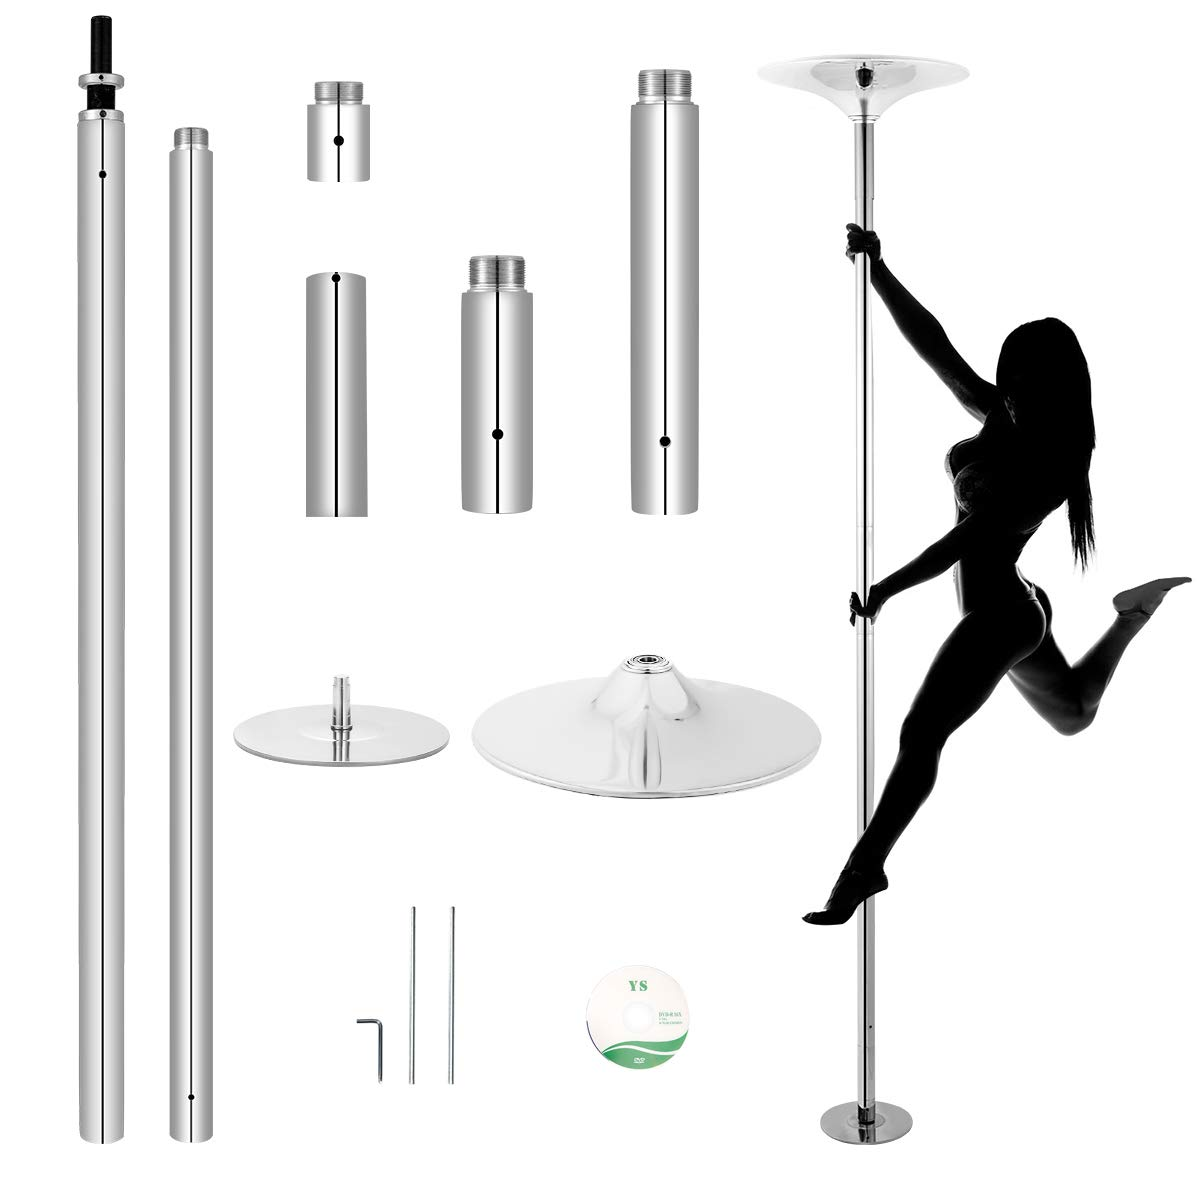 MELLCOM Dancing Pole Spinning Static Pole Dance with Adjustable Height, Portable Removable Pole Kit for Home Club Gym Bar